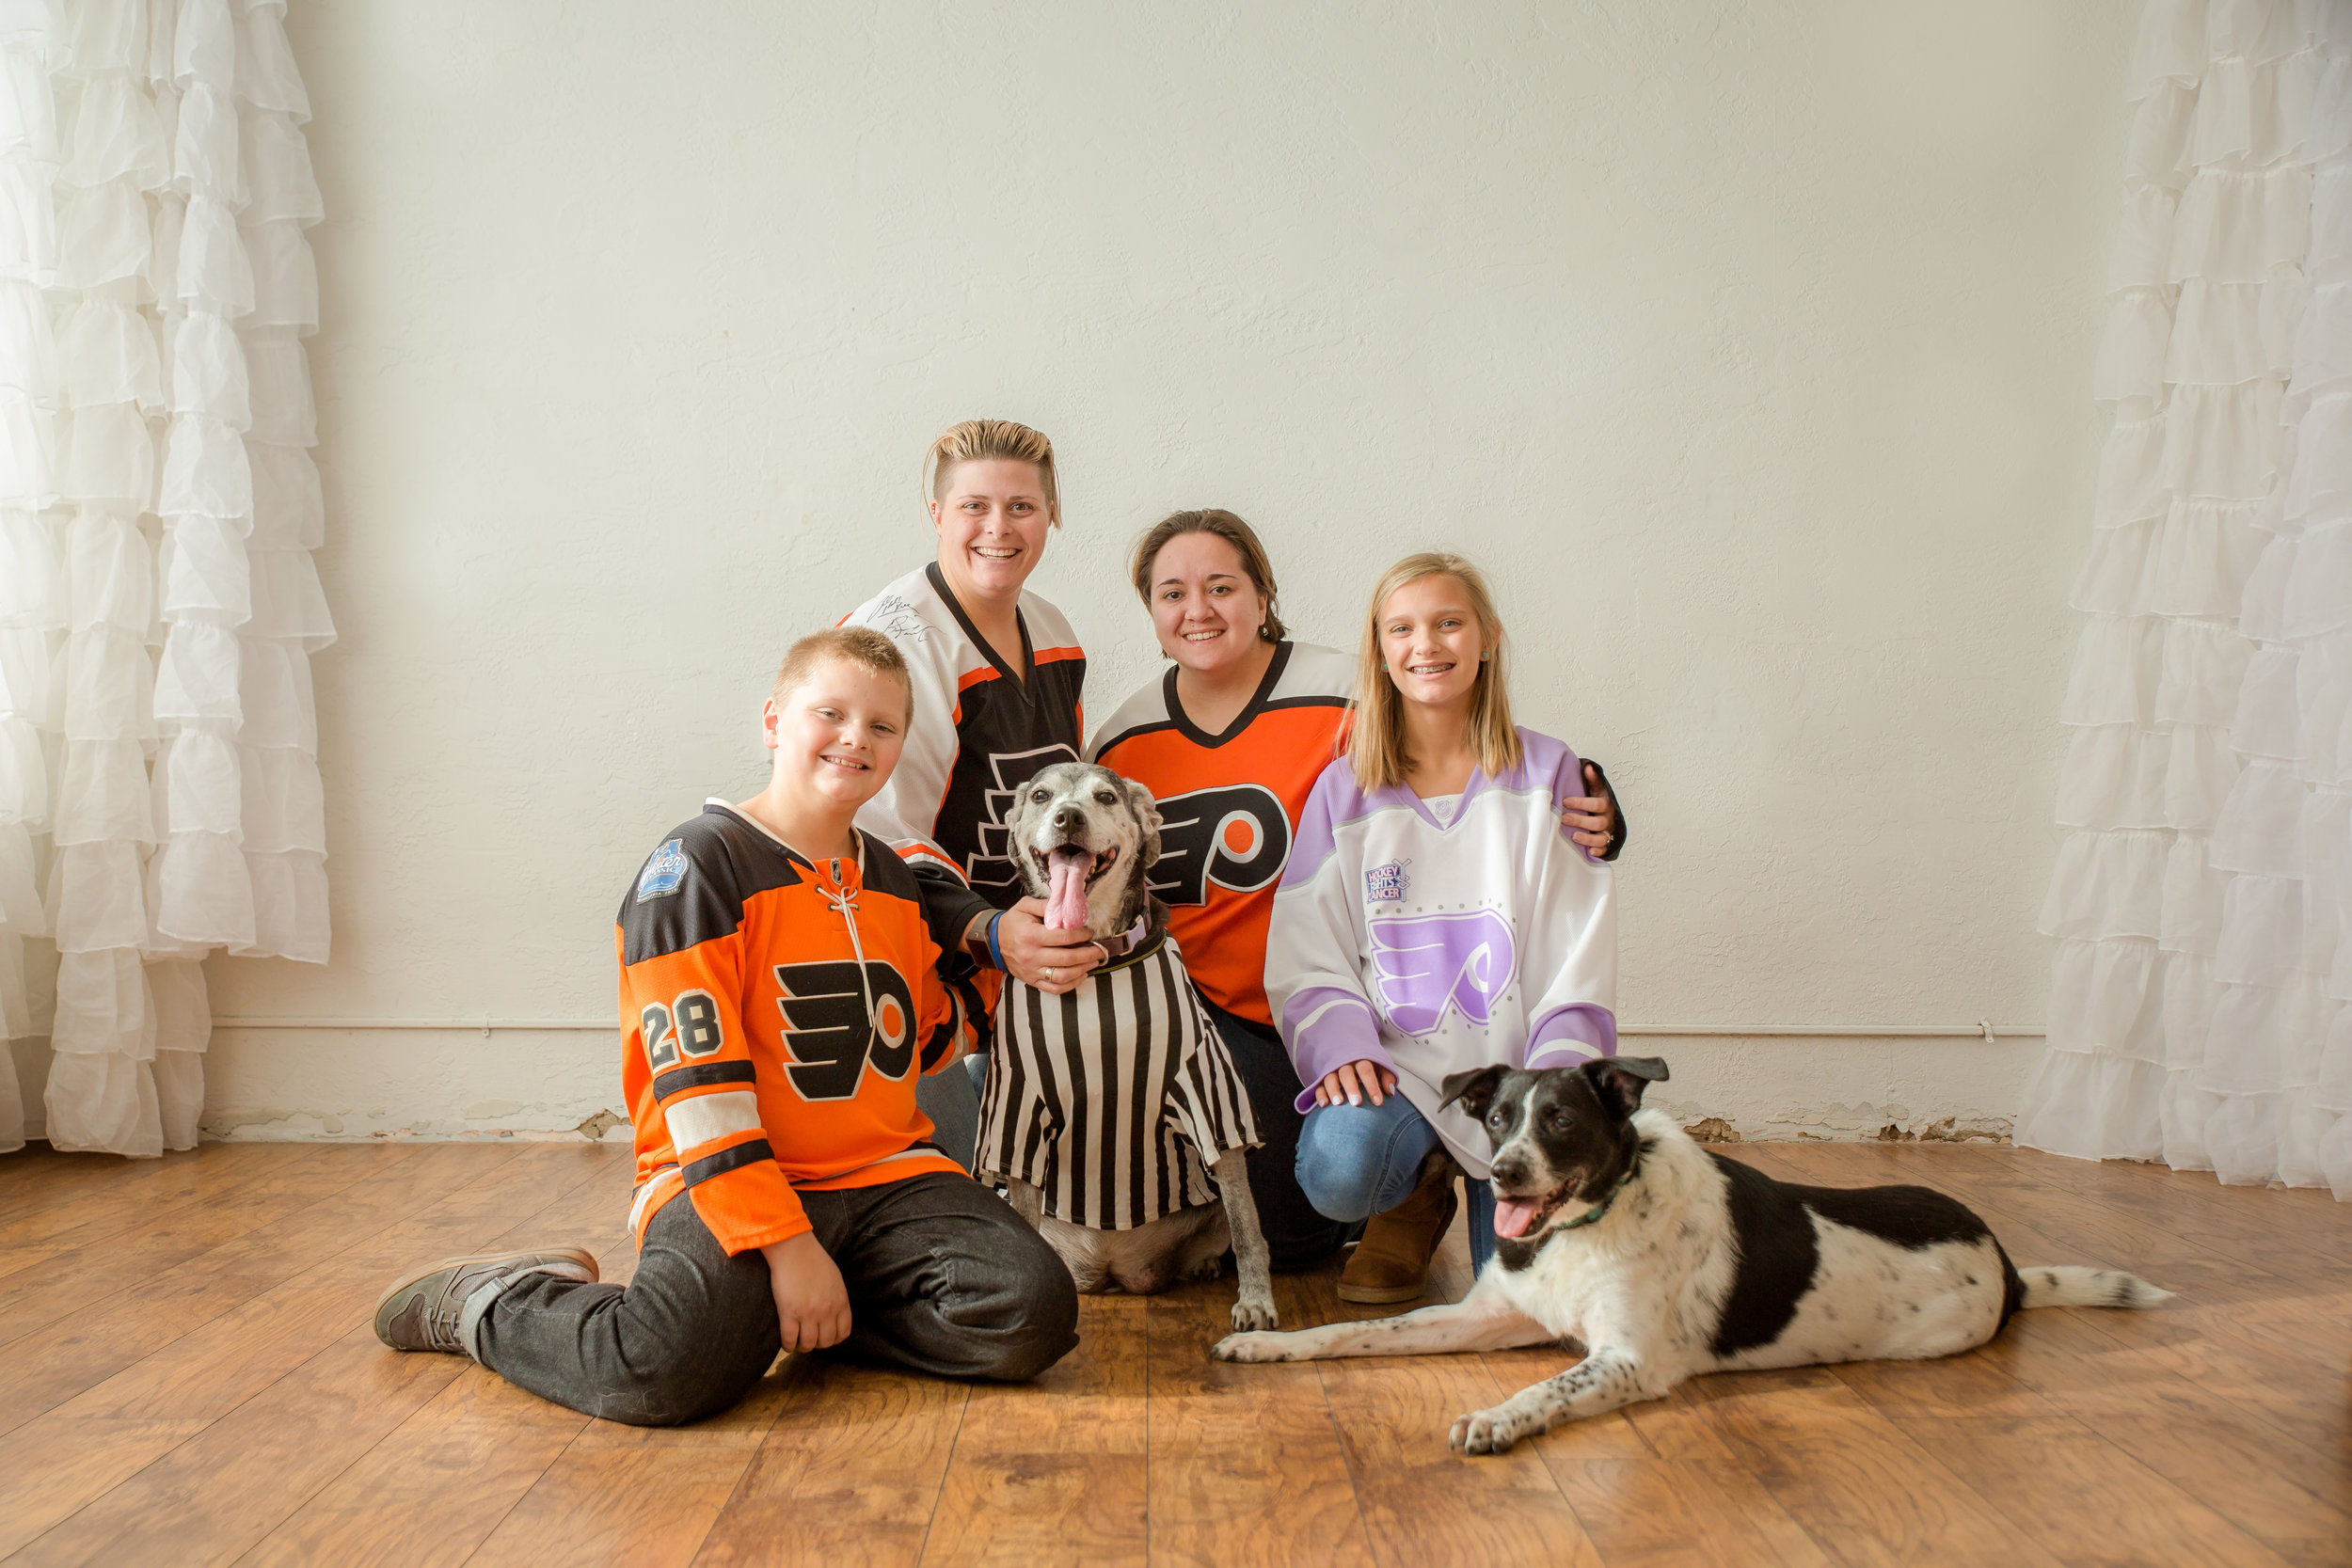 hockey lesbian family with two dogs